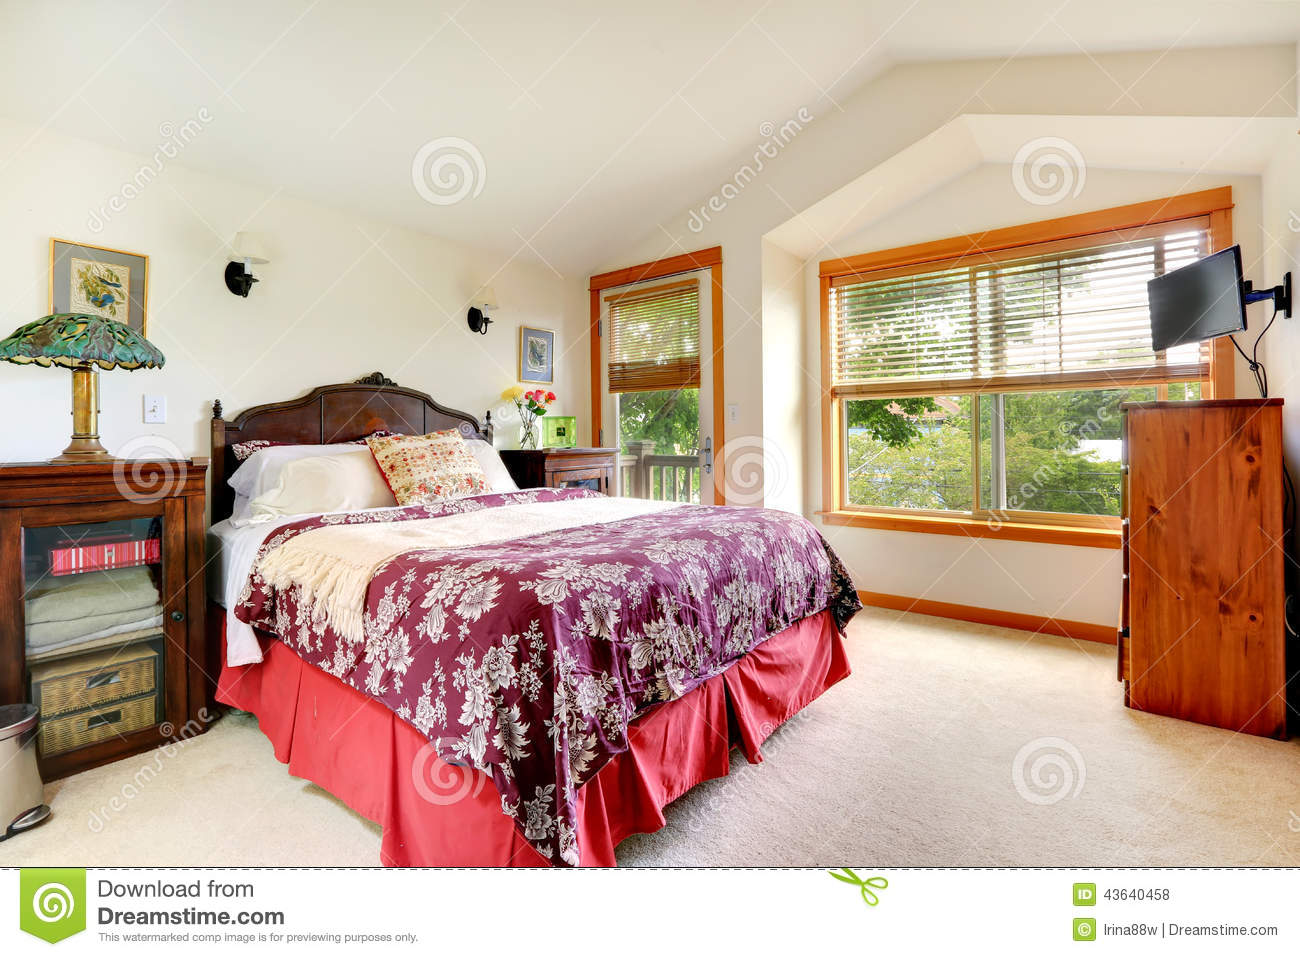 Bedroom interior in american house stock photo image for American chambre